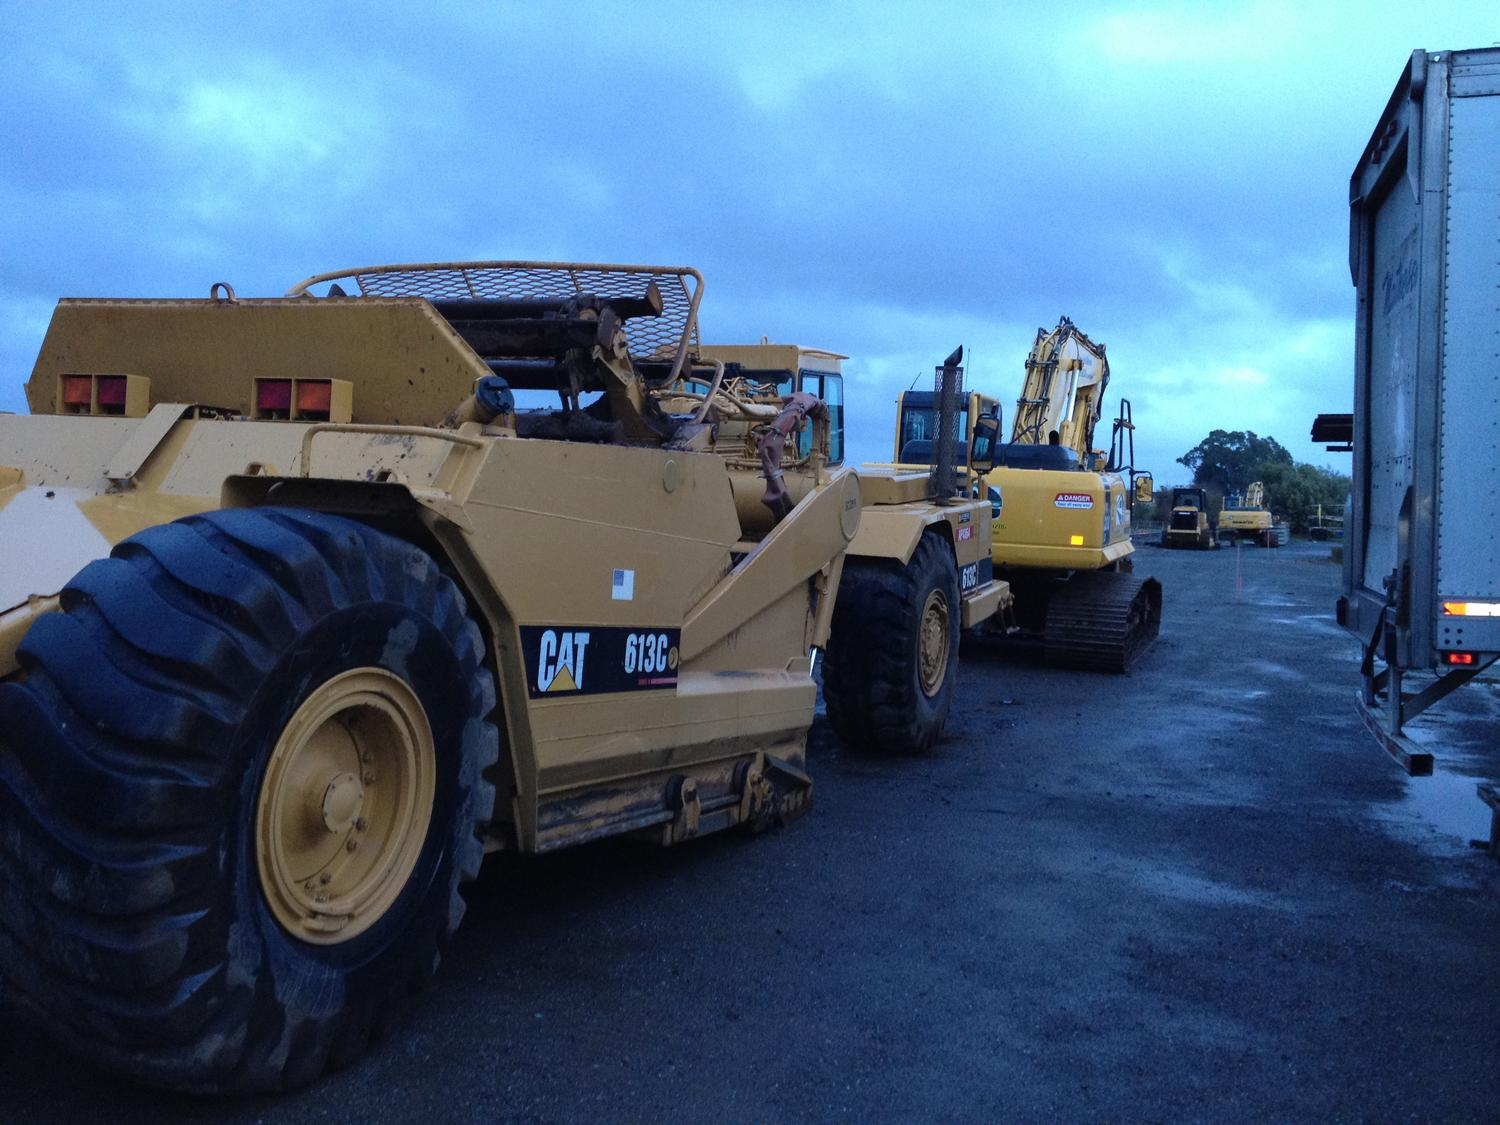 Some heavy equipment in place to start working on the right of way in Petaluma, Ca.